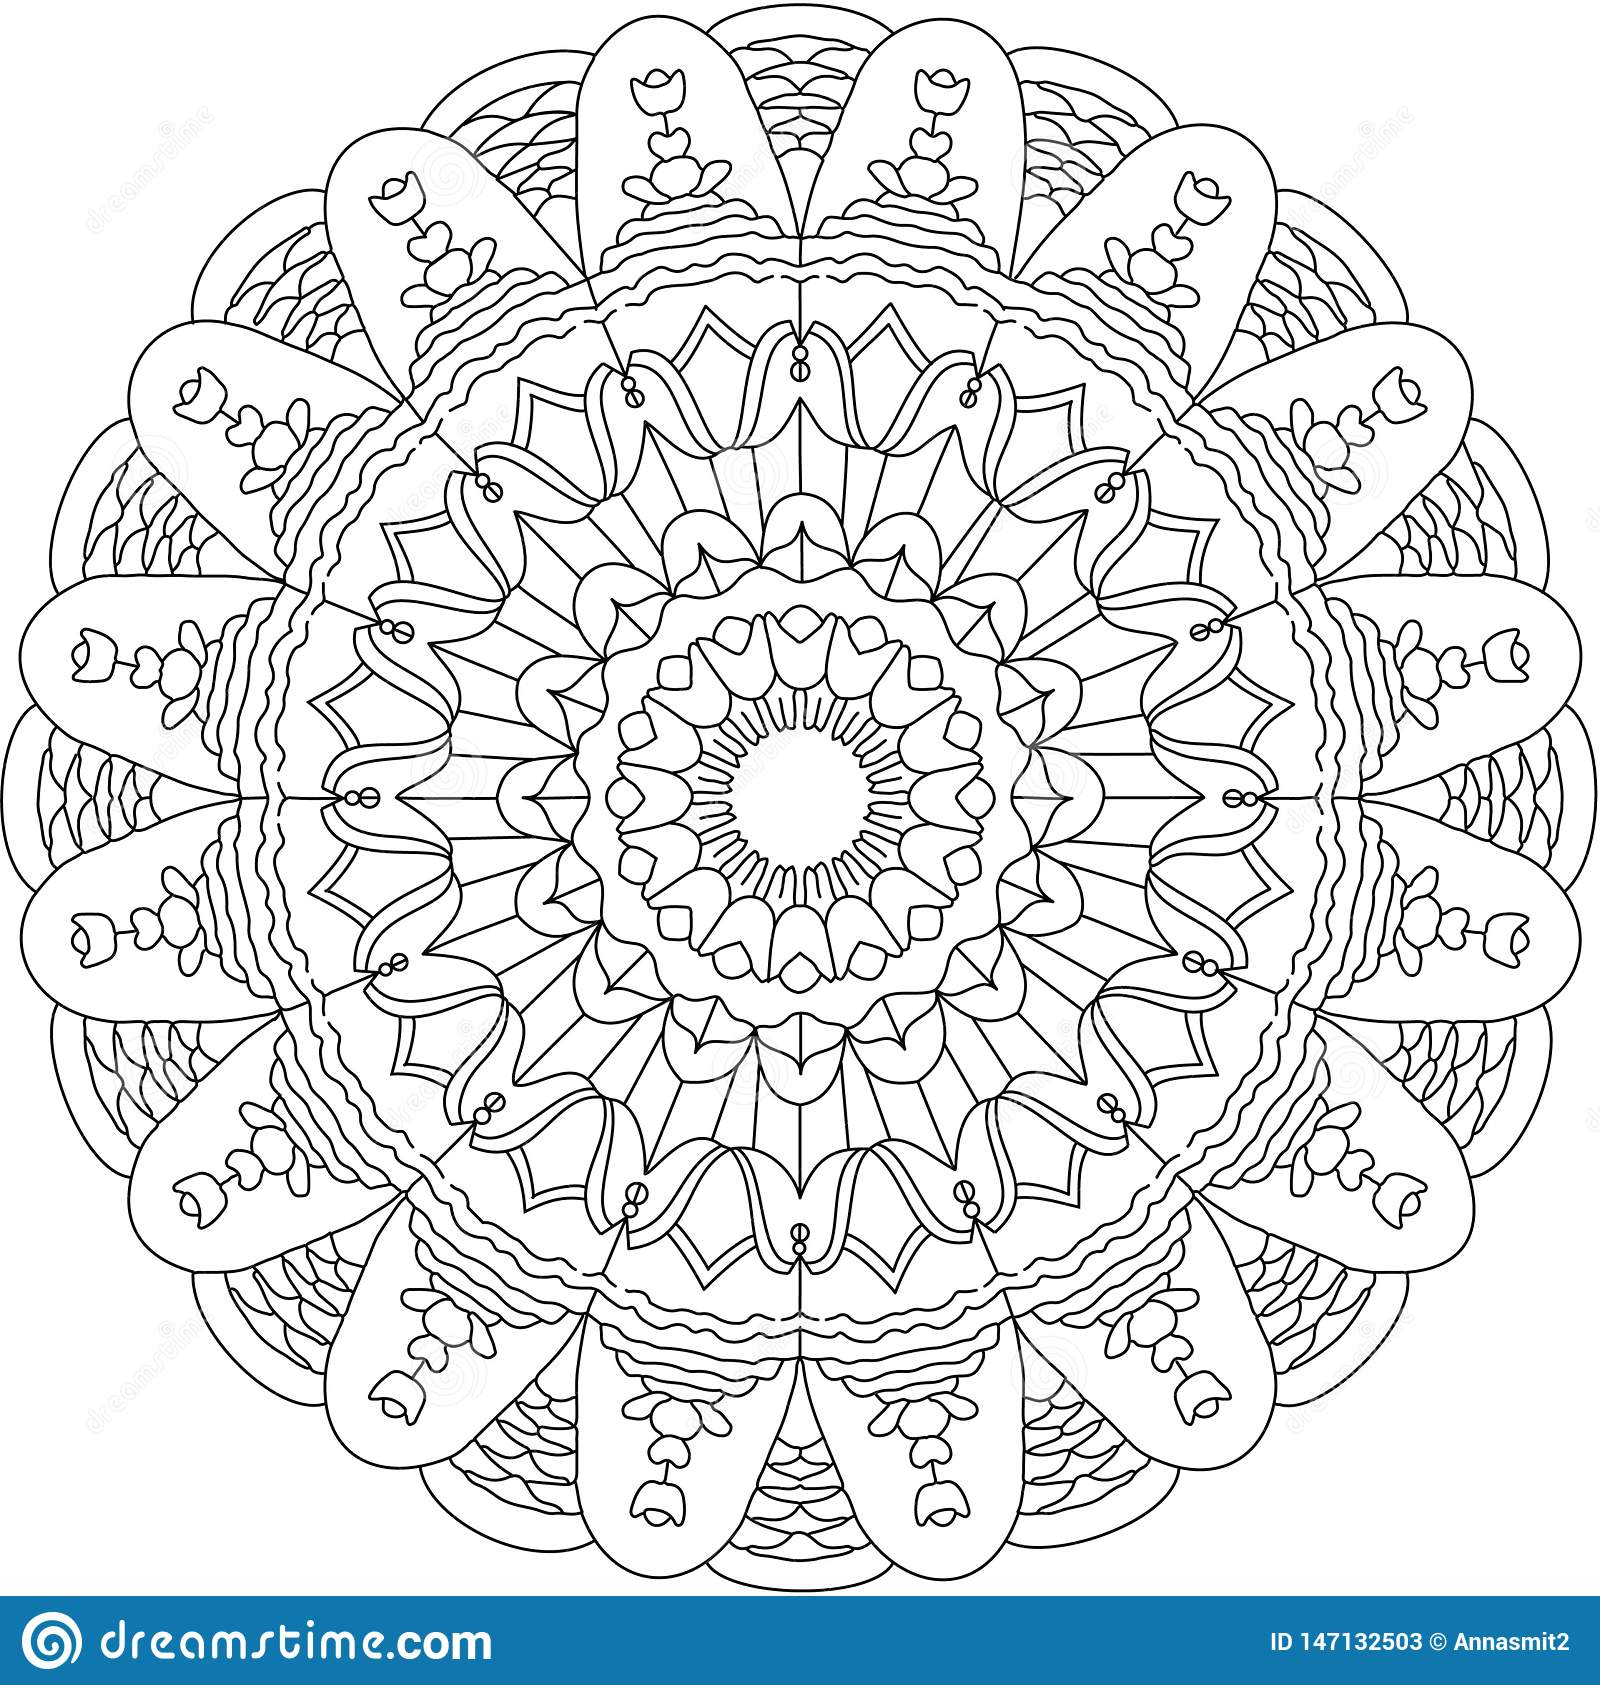 Mandalas - Coloring Pages for Adults | 1685x1600